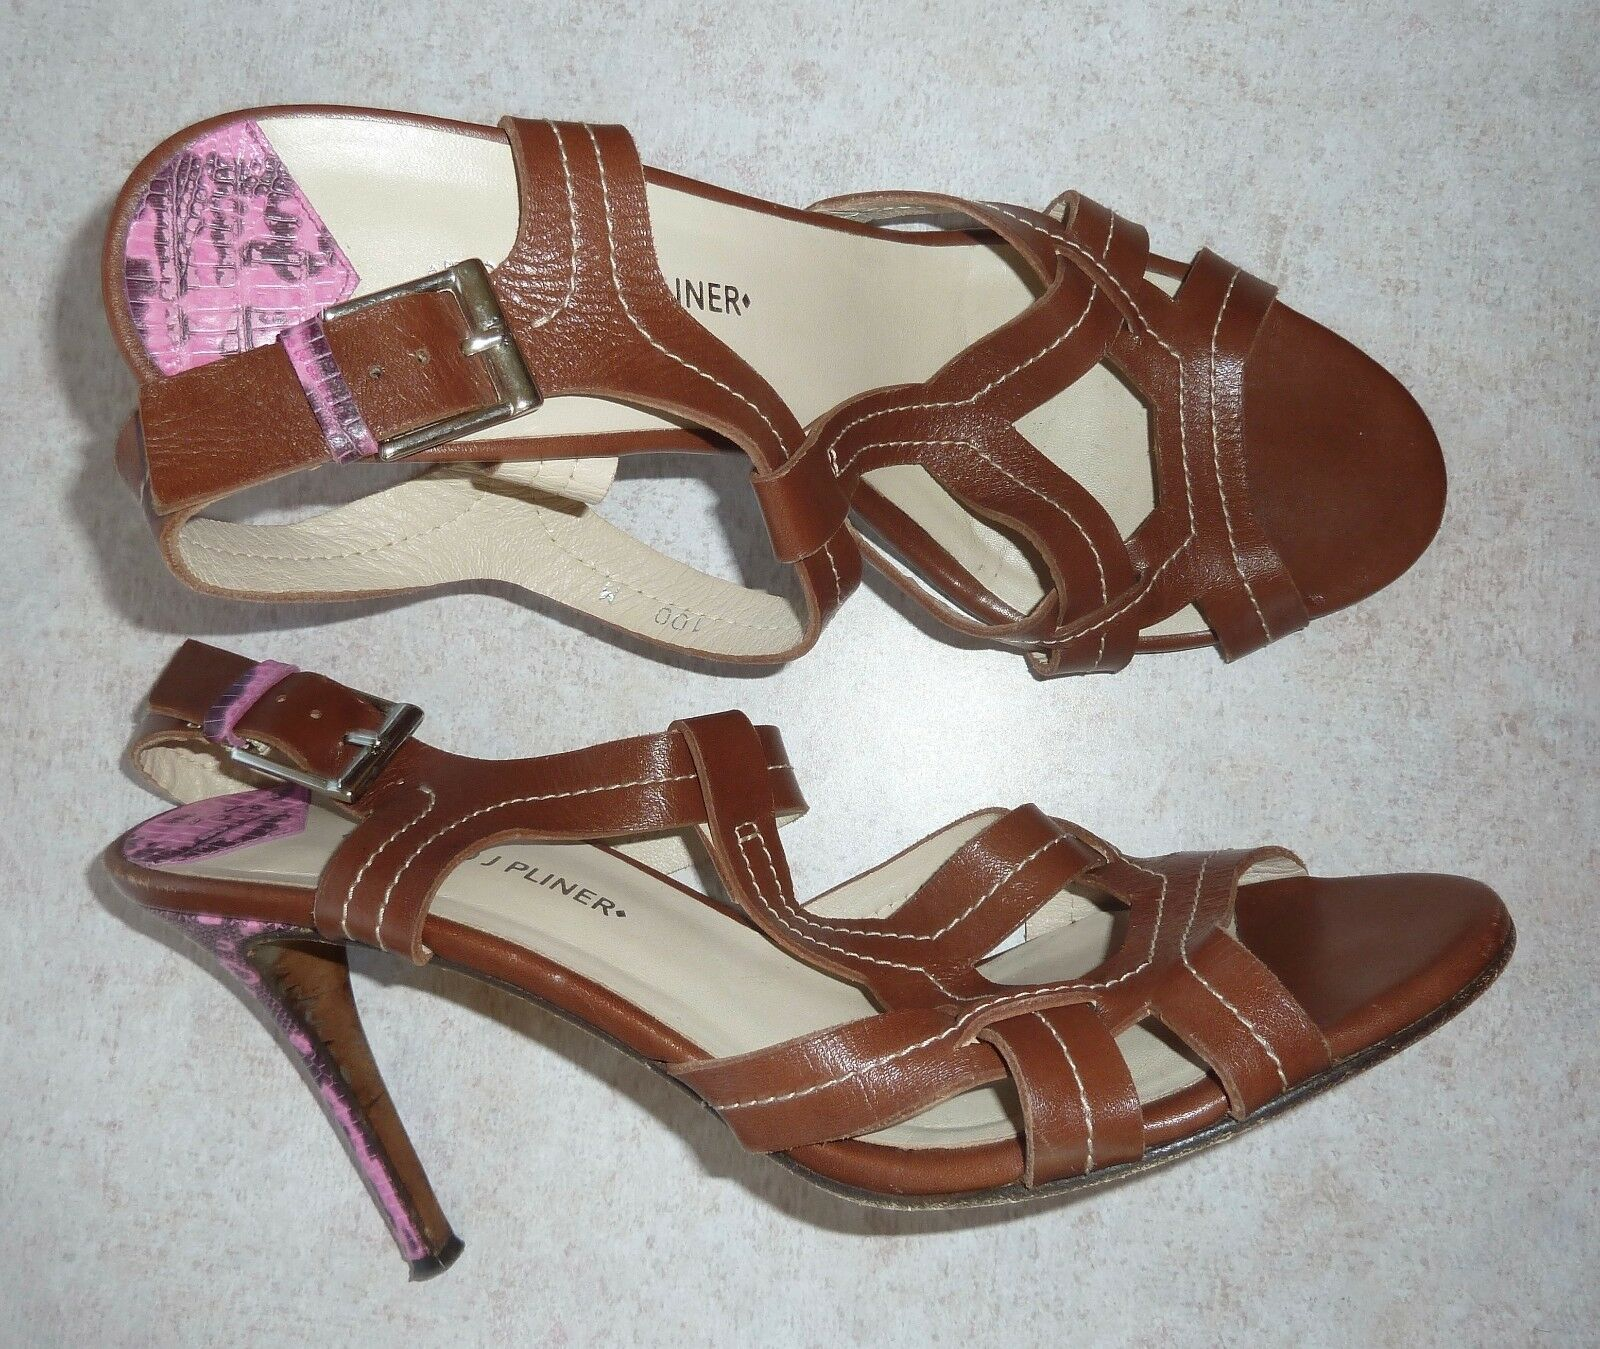 DONALD PLINER - BROWN T-STRAP SANDALS - w/PINK REPTILE STILETTO HEELS - SANDALS LADIES 10M 900d19